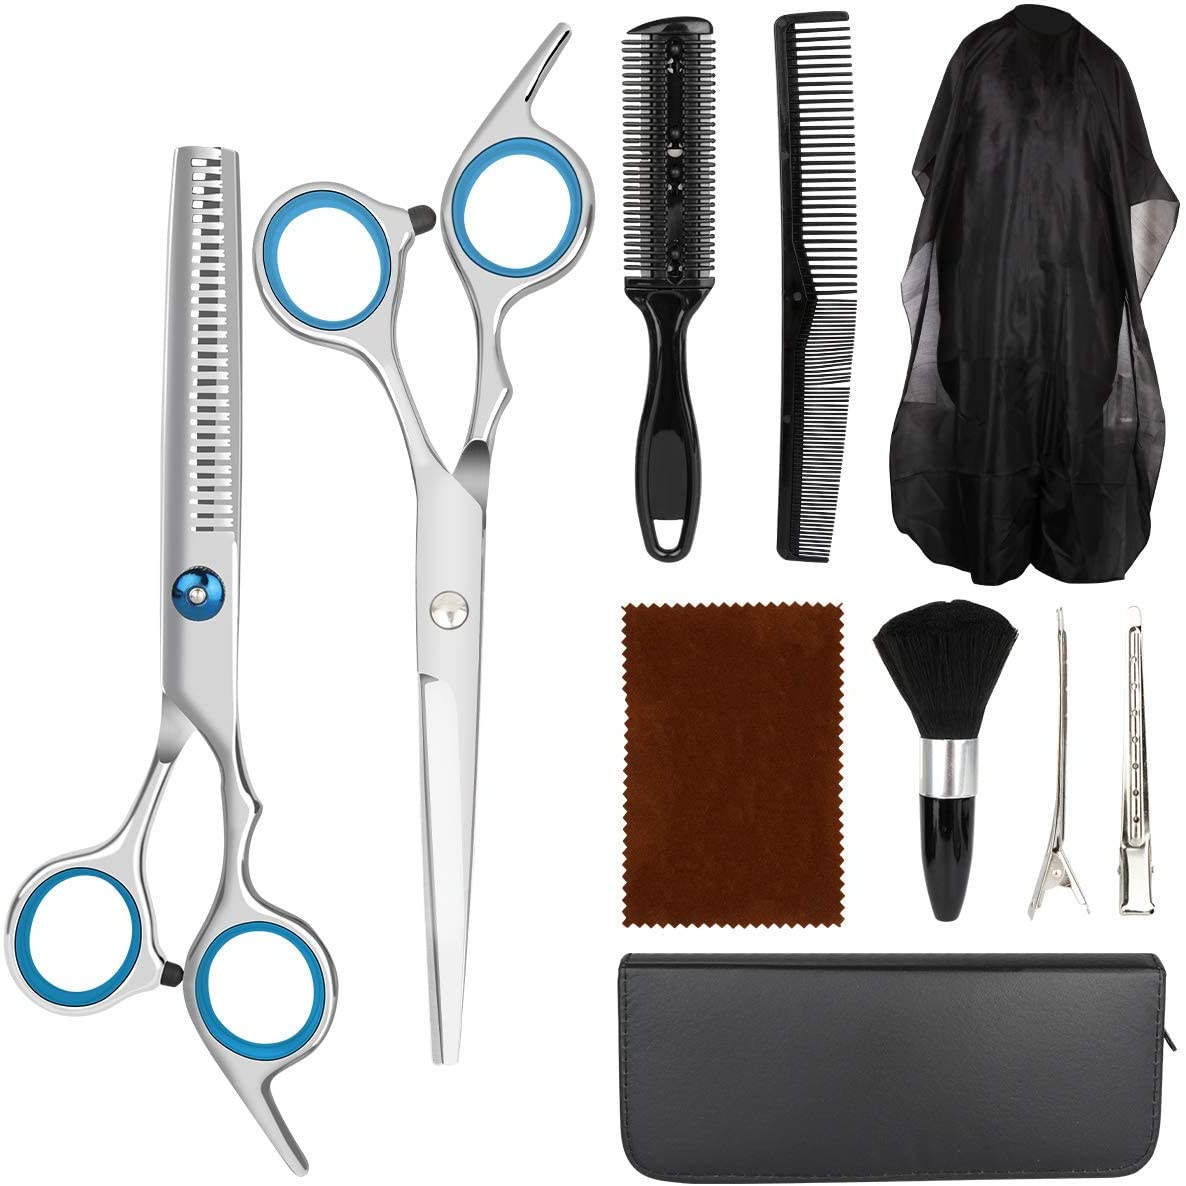 Hair Cutting Scissors Kit, MseTin 10 PCS Professional Stainless Steel Haircut Shears with Hair Cutting Scissors Set for Salon, Barber and Family